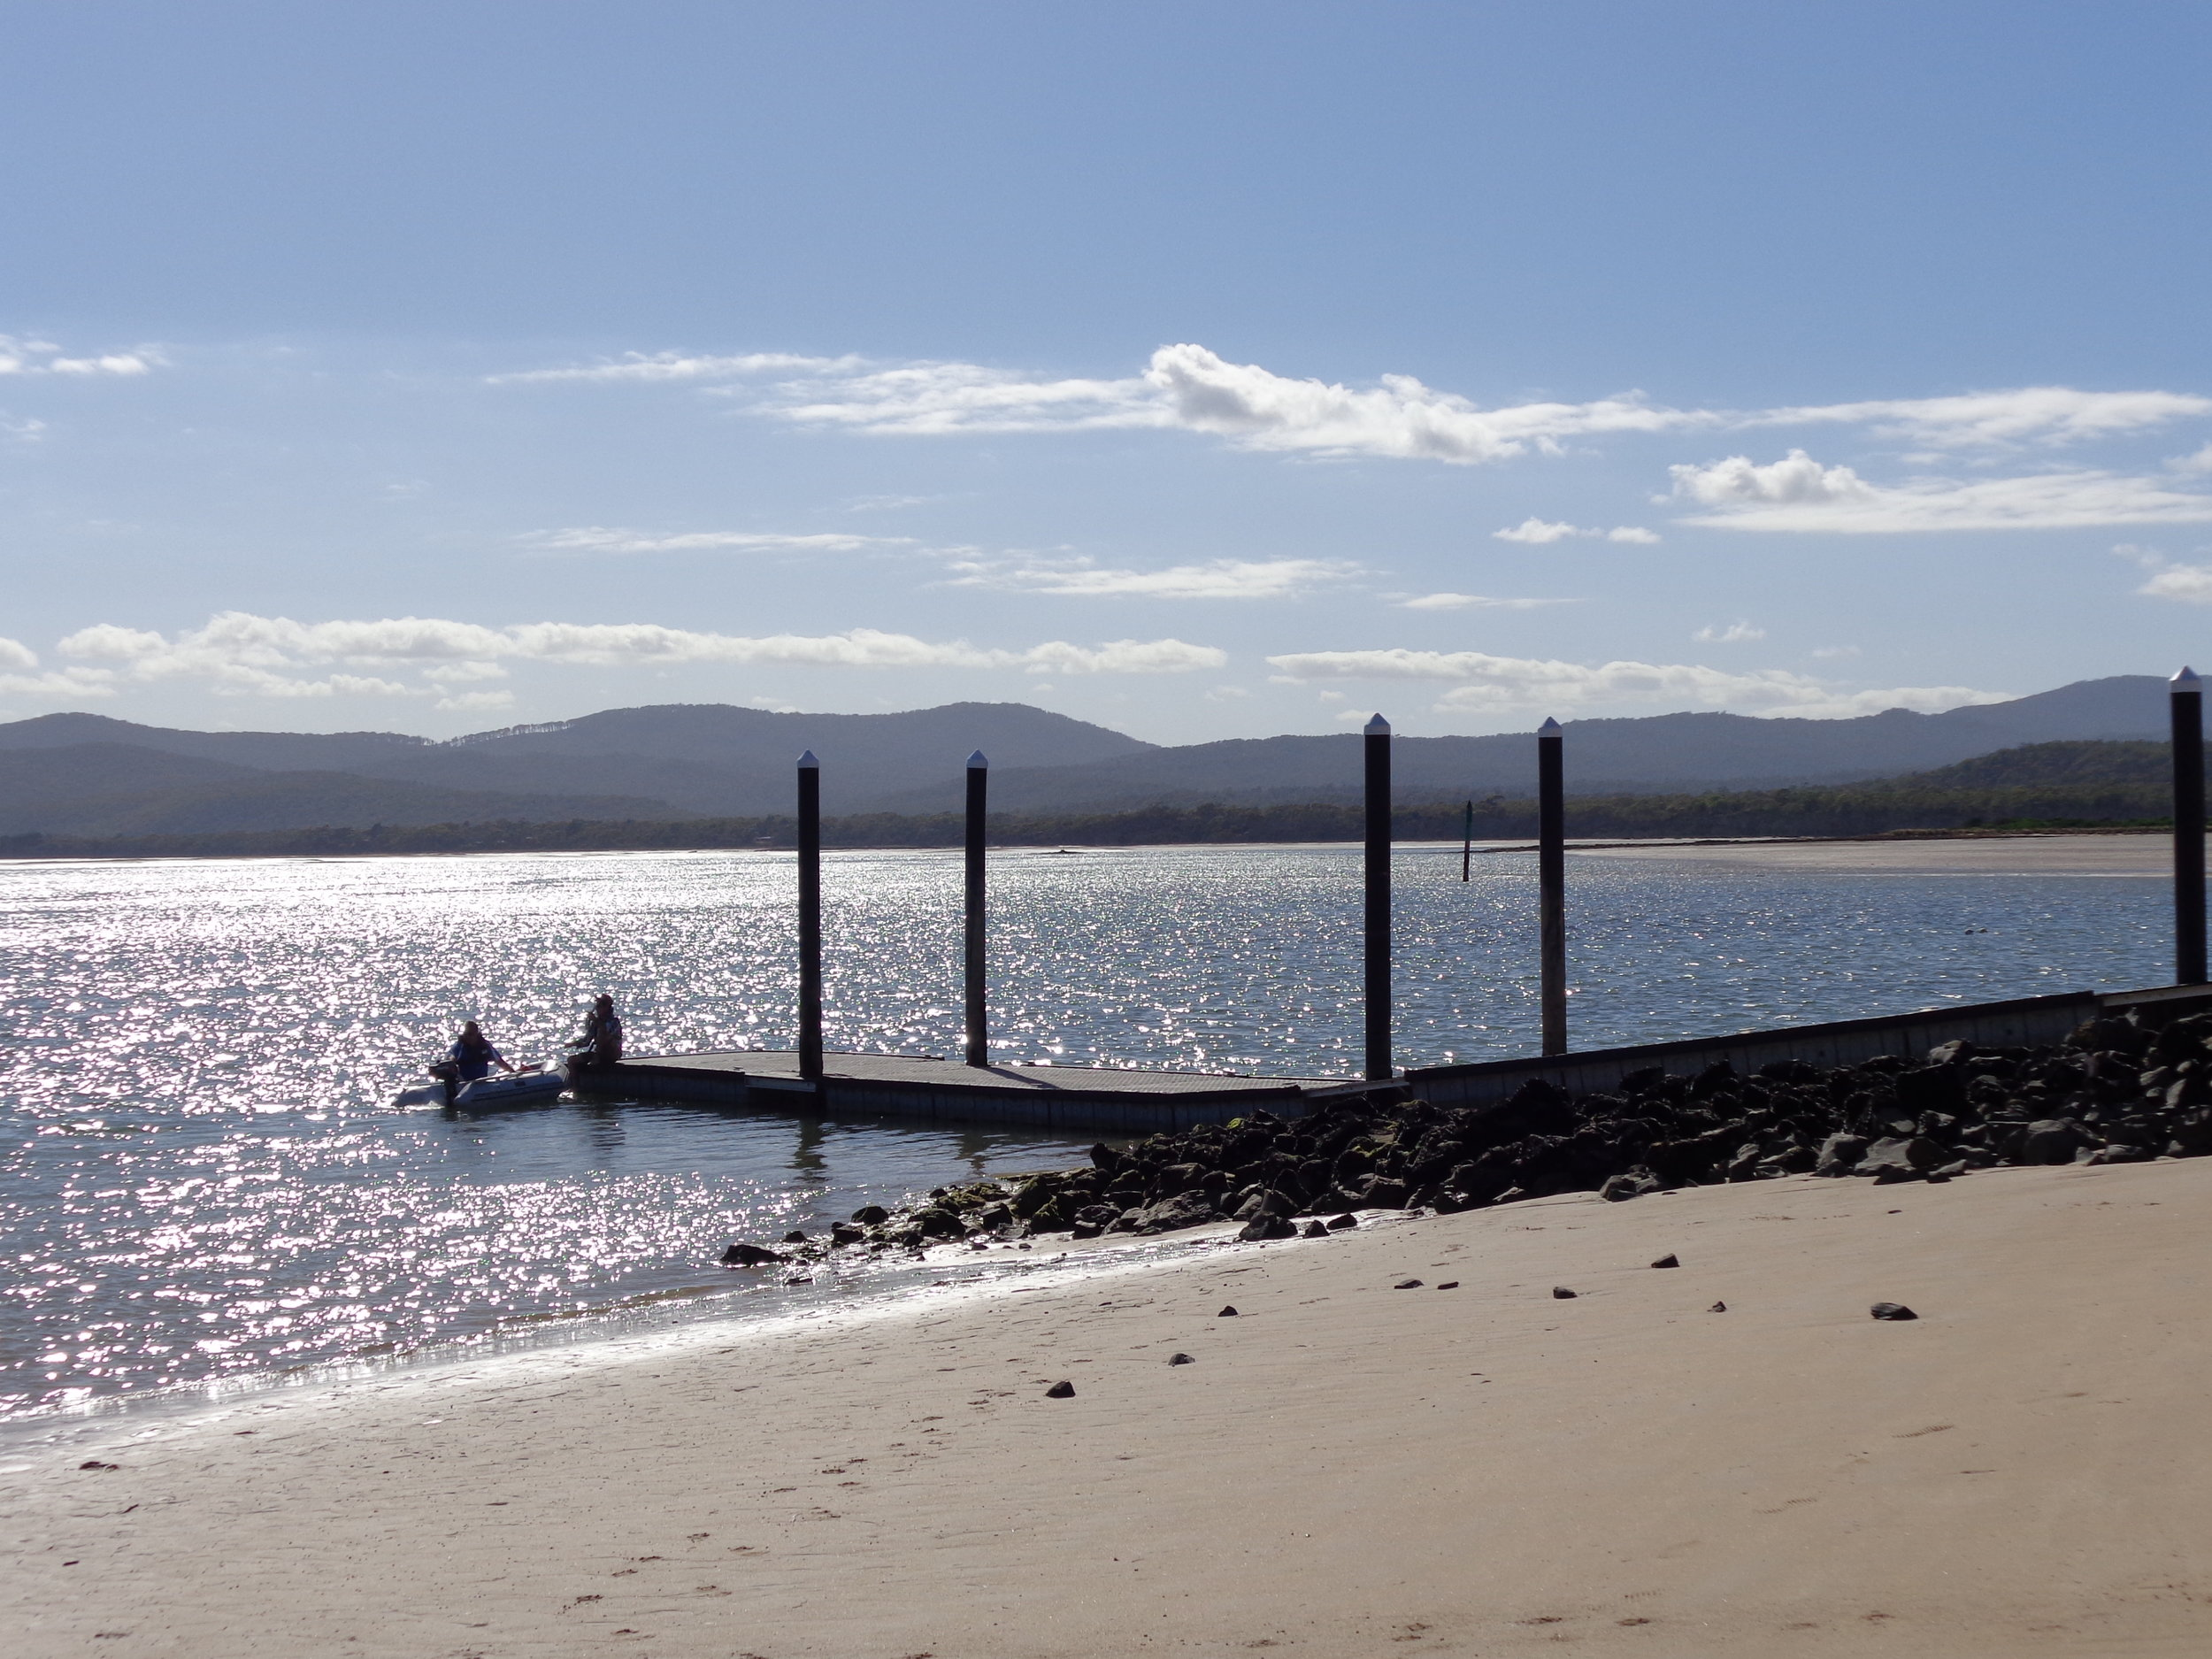 Port Sorell Boat Ramp with Narawntapu National Park in the background